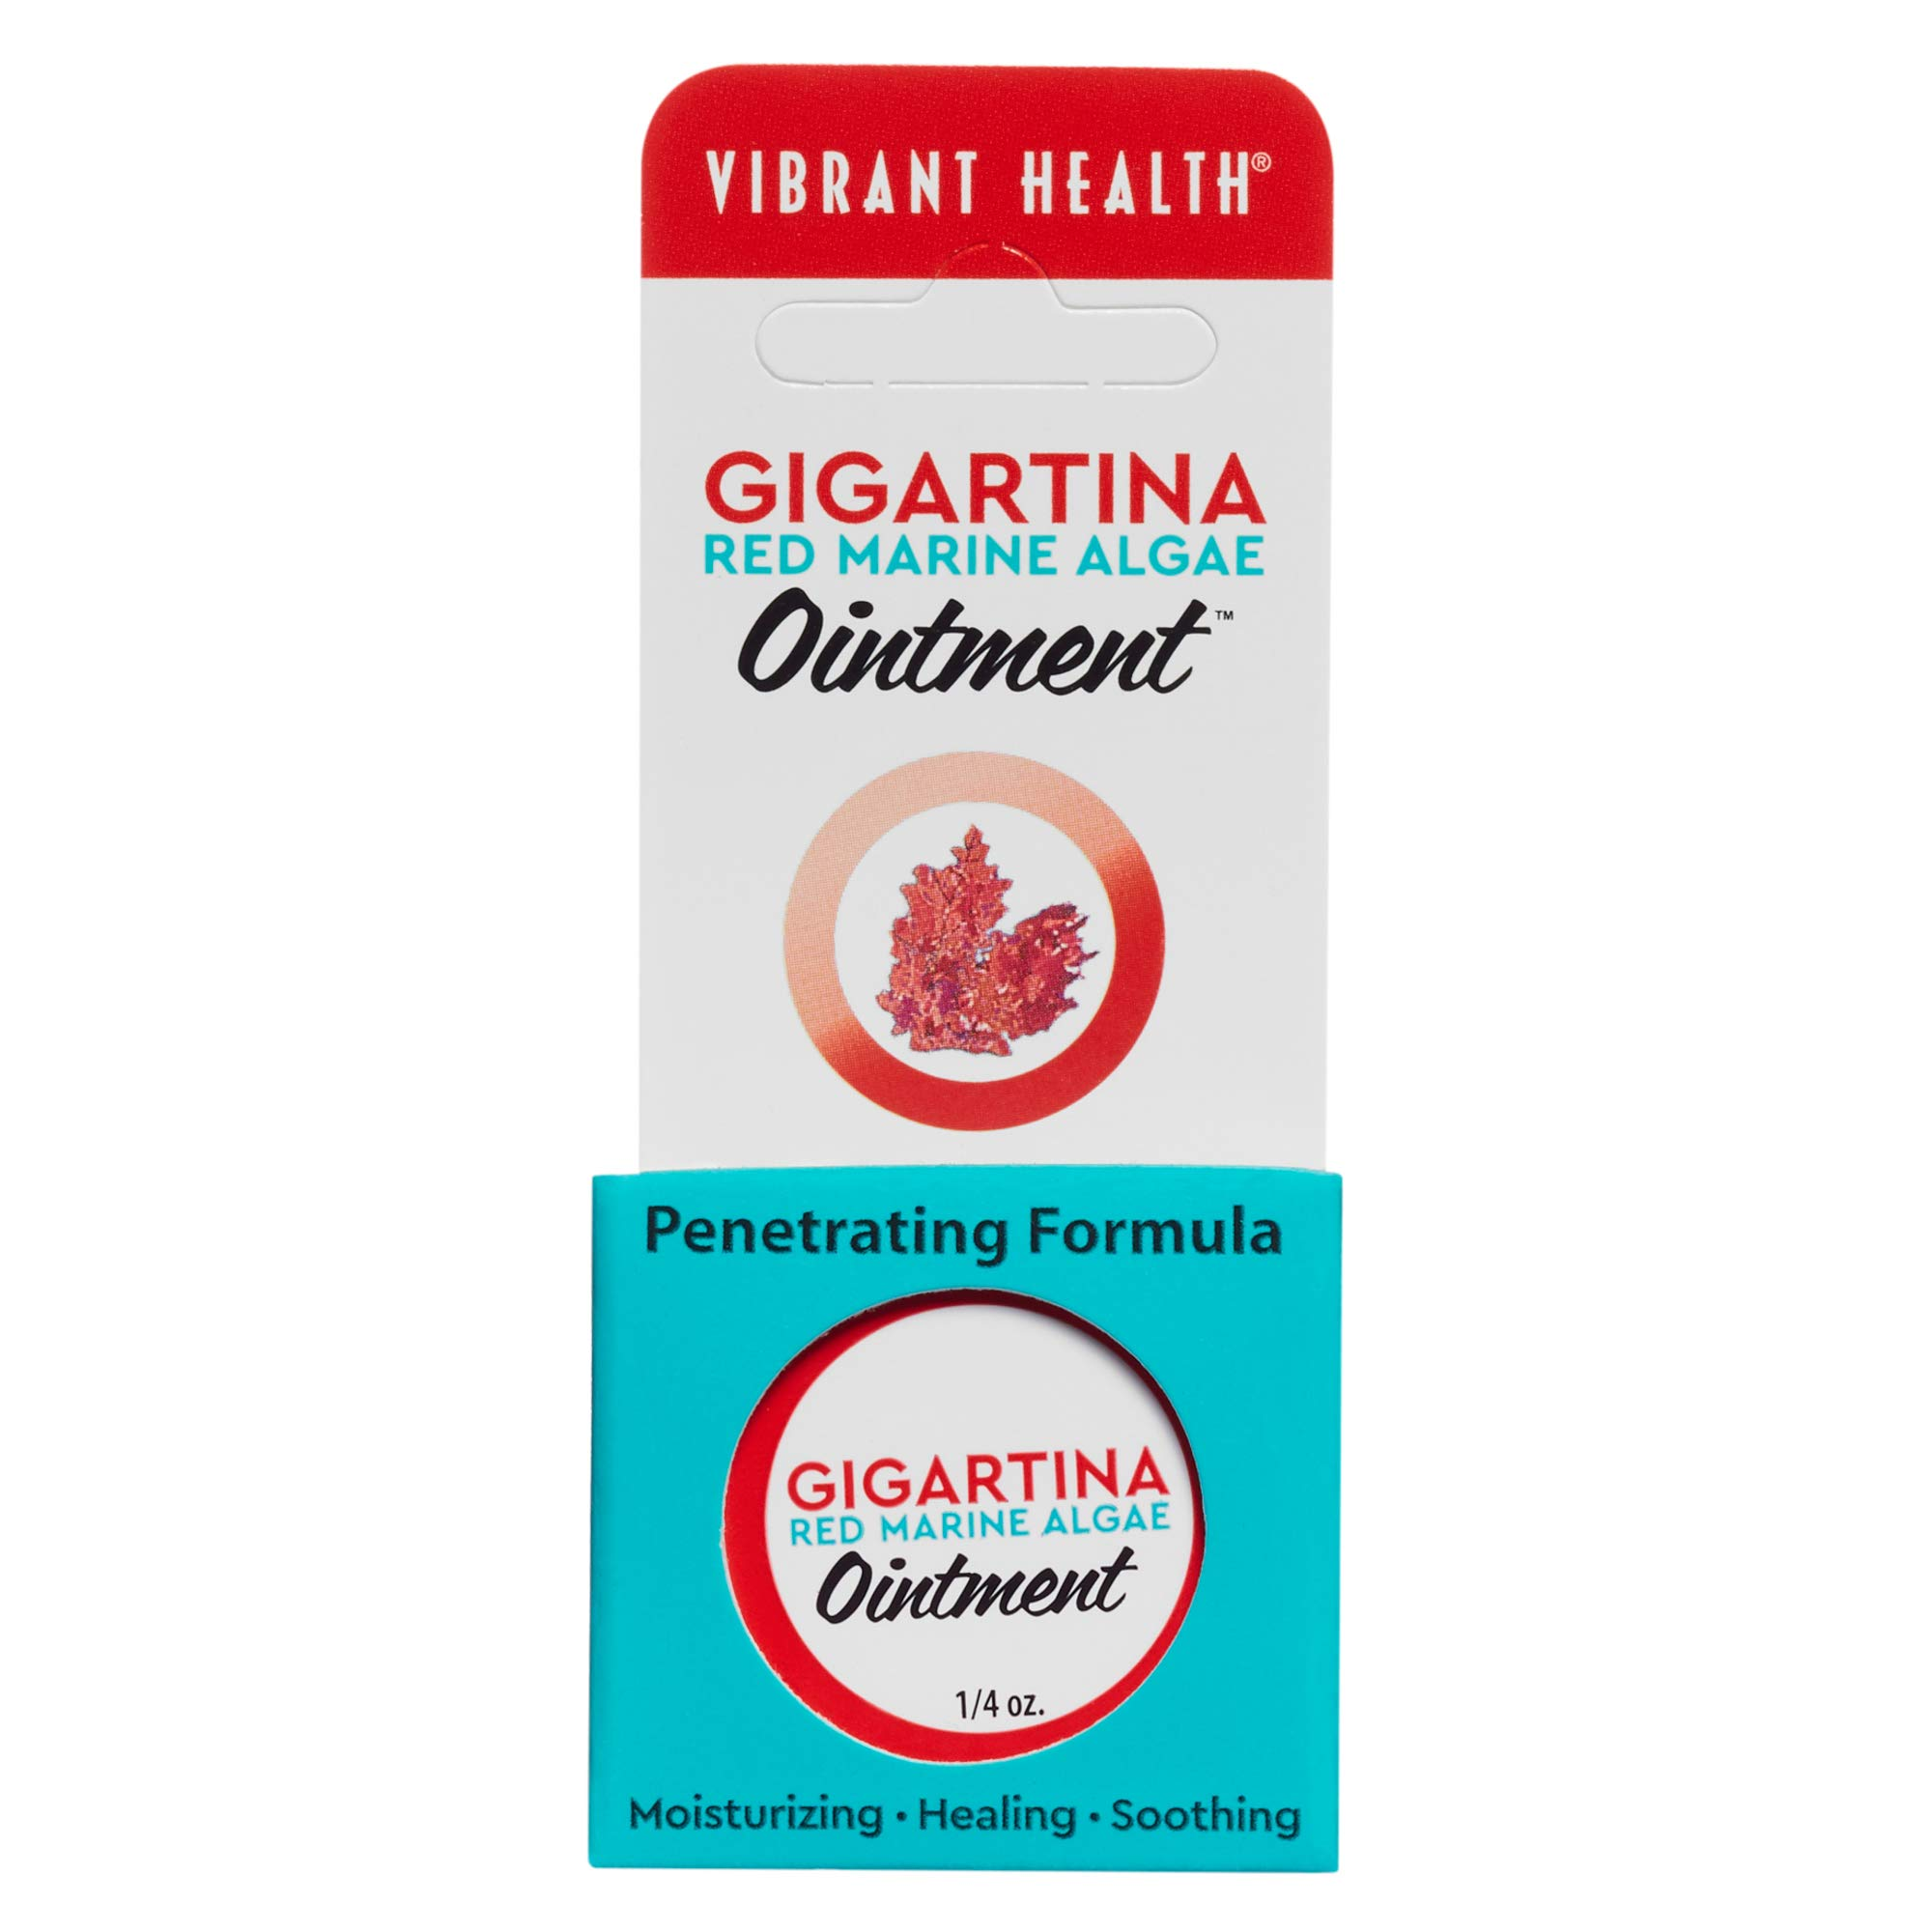 Vibrant Health - Gigartina Red Marine Algae Ointment, Natural Support for Immune Function and Healing with RMA, Shea Butter, and Vitamin E, 1/4 (FFP)